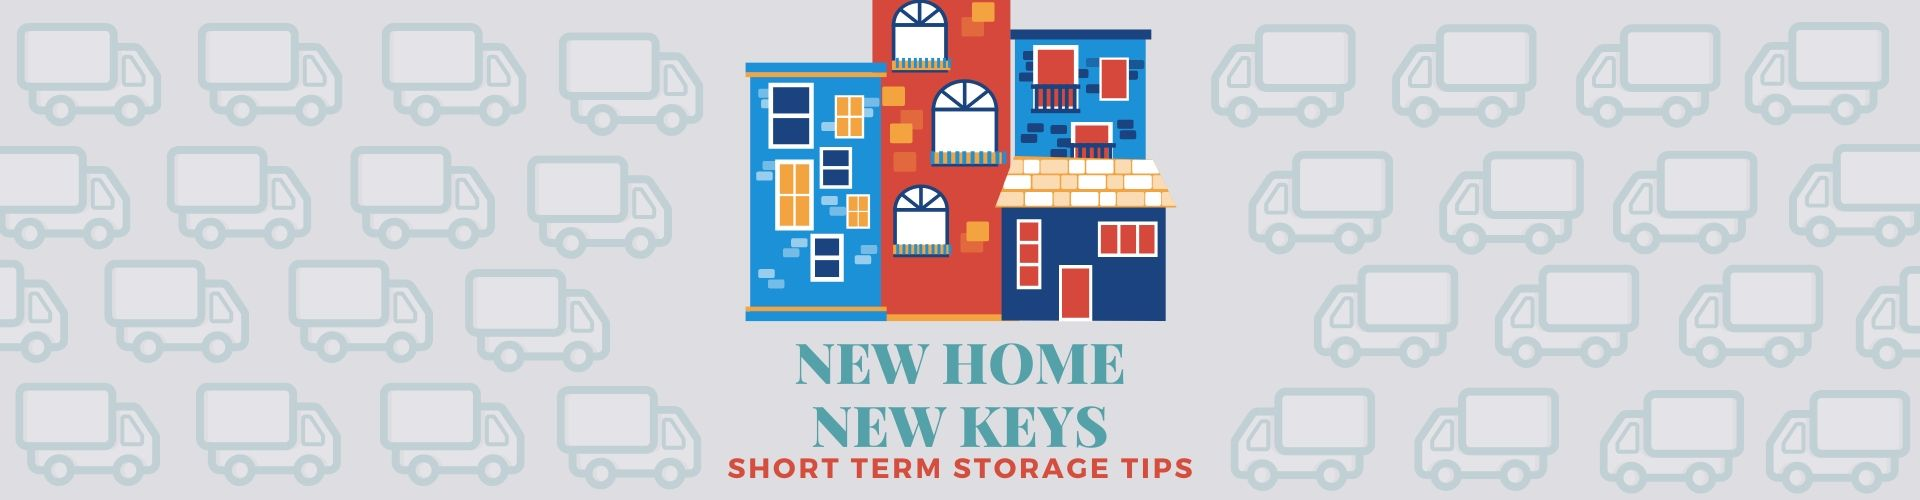 Organize Yourself With Temporary Storage